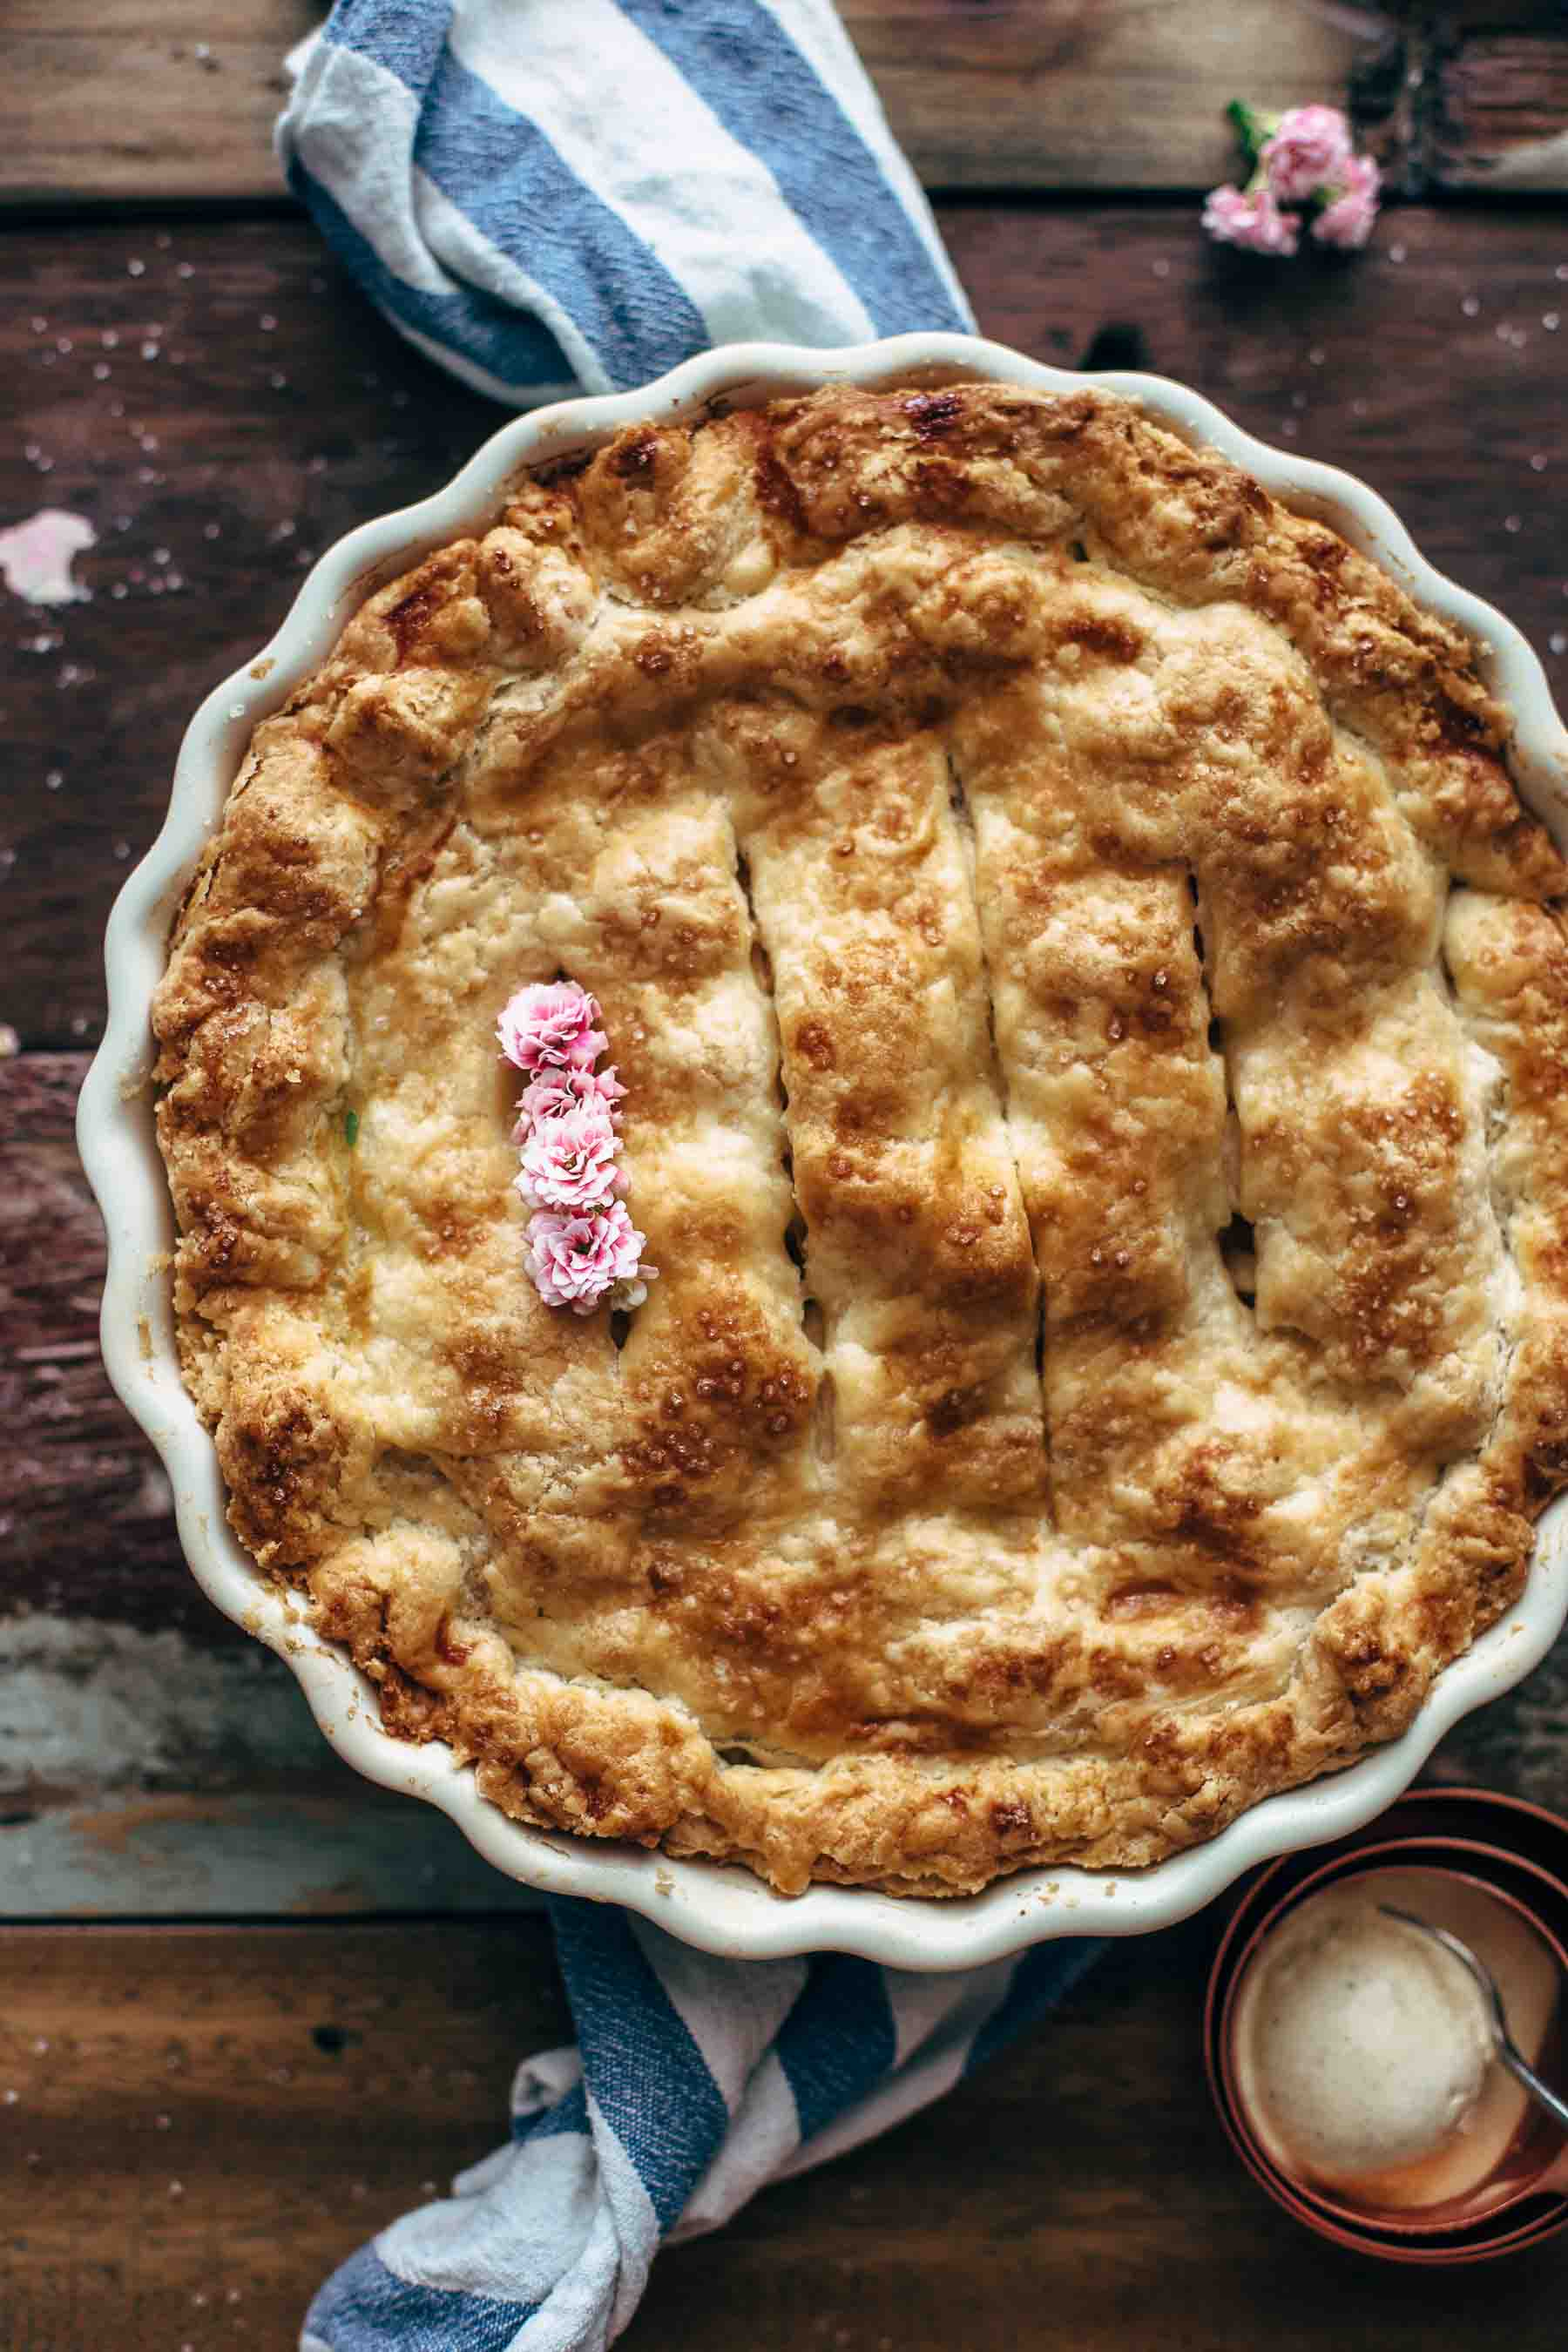 Best Apple Pie recipe from scratch